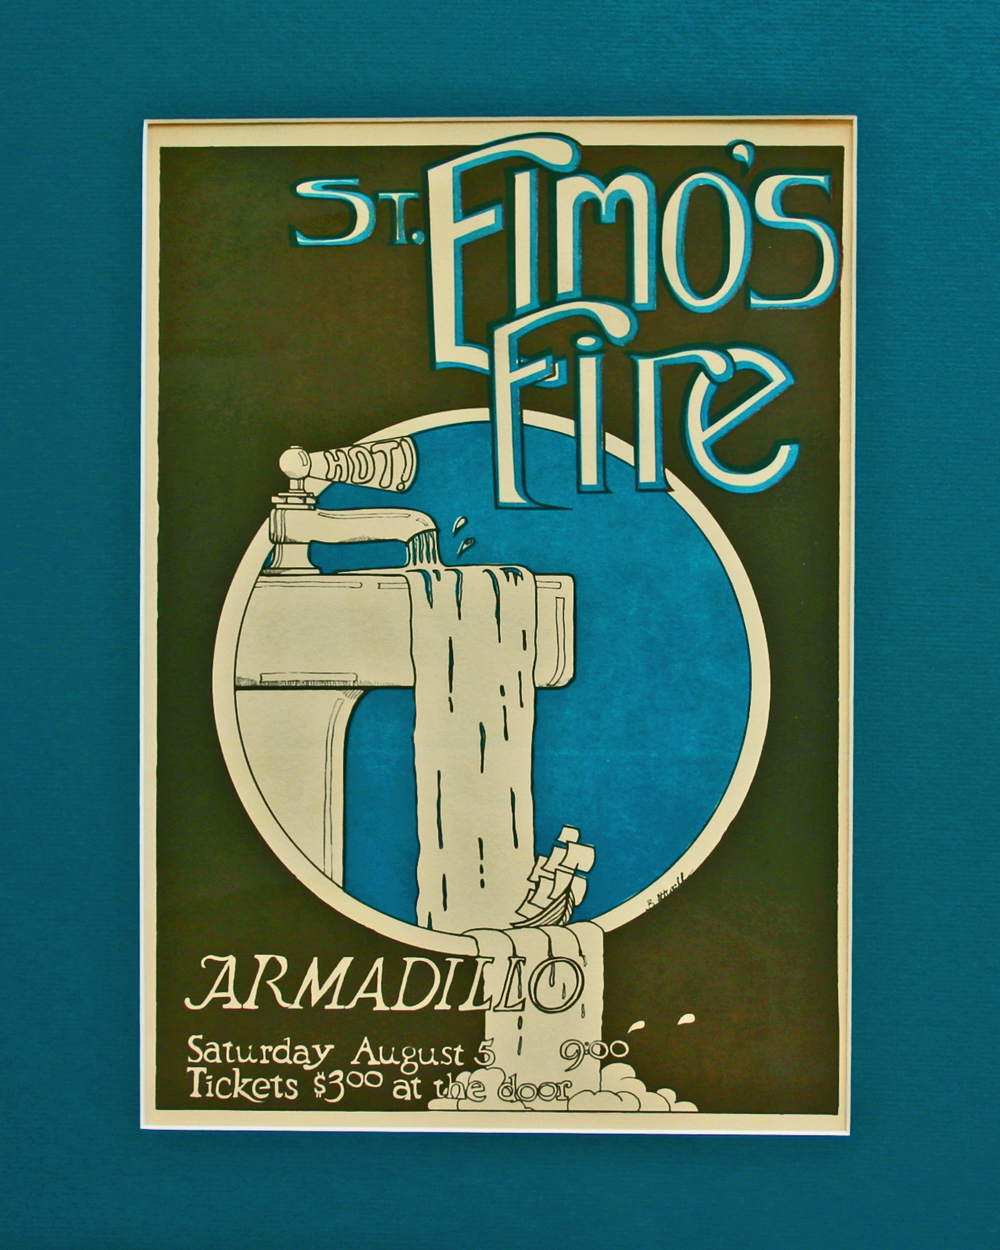 St. Elmo's Fire Band Poster